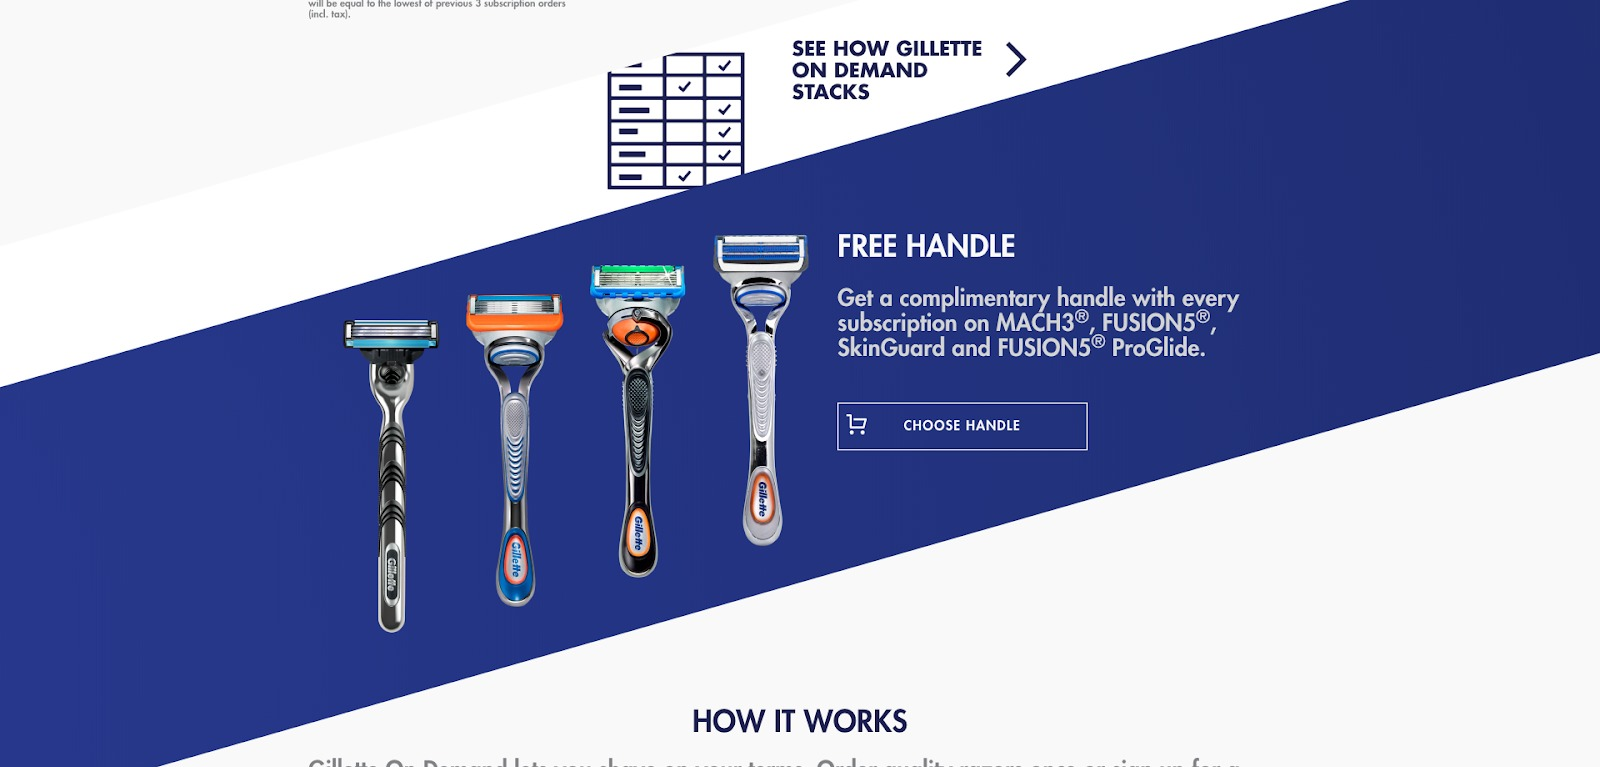 Gillette homepage